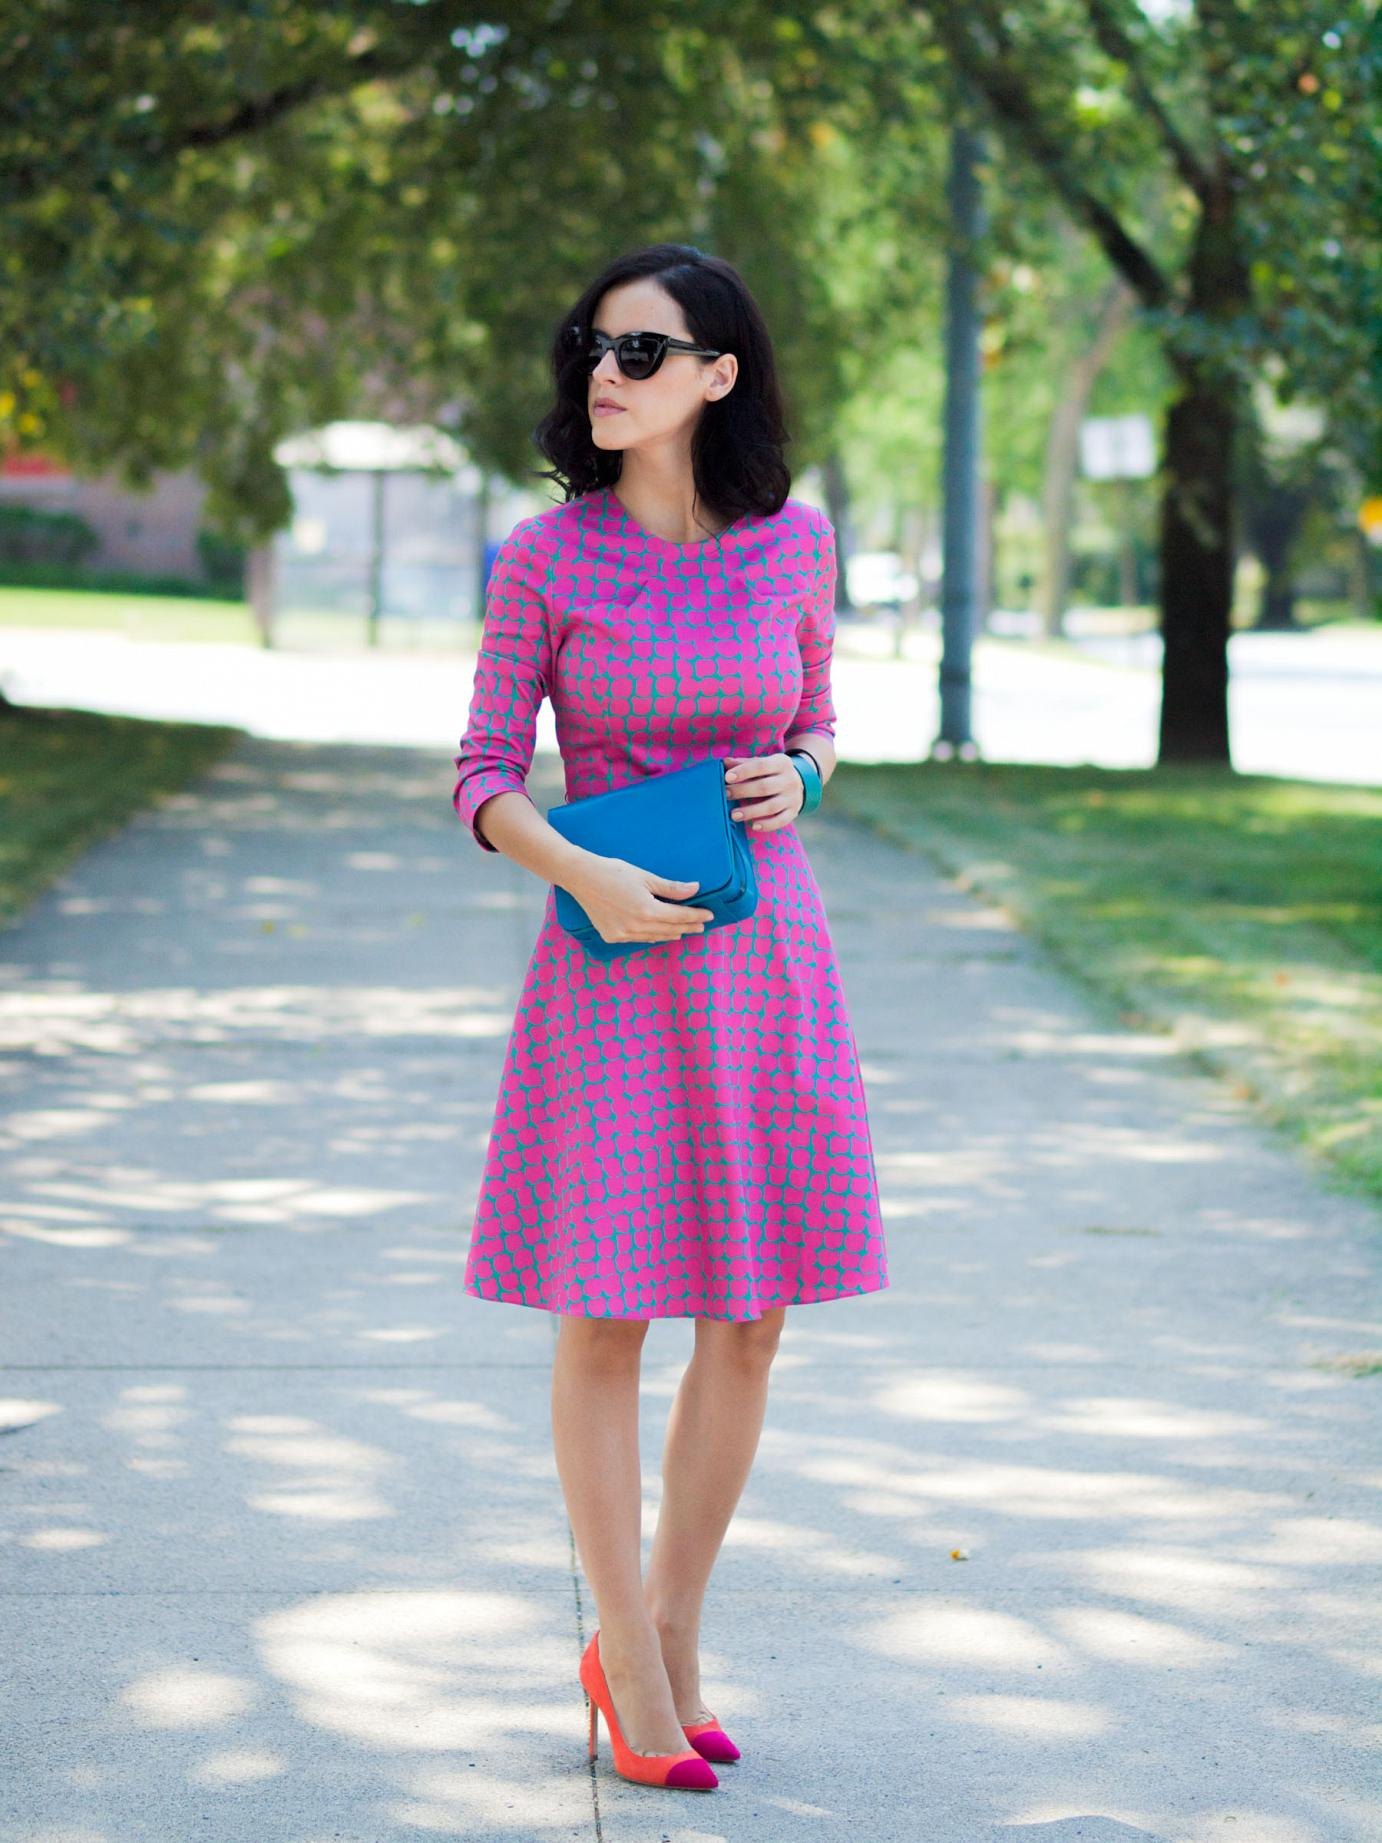 bittersweet colours, giveaway, pink dress, piol dress, cooee jewelry, asos sunglasses, manolo blahnik, printed dress, street style, feminine style, colors